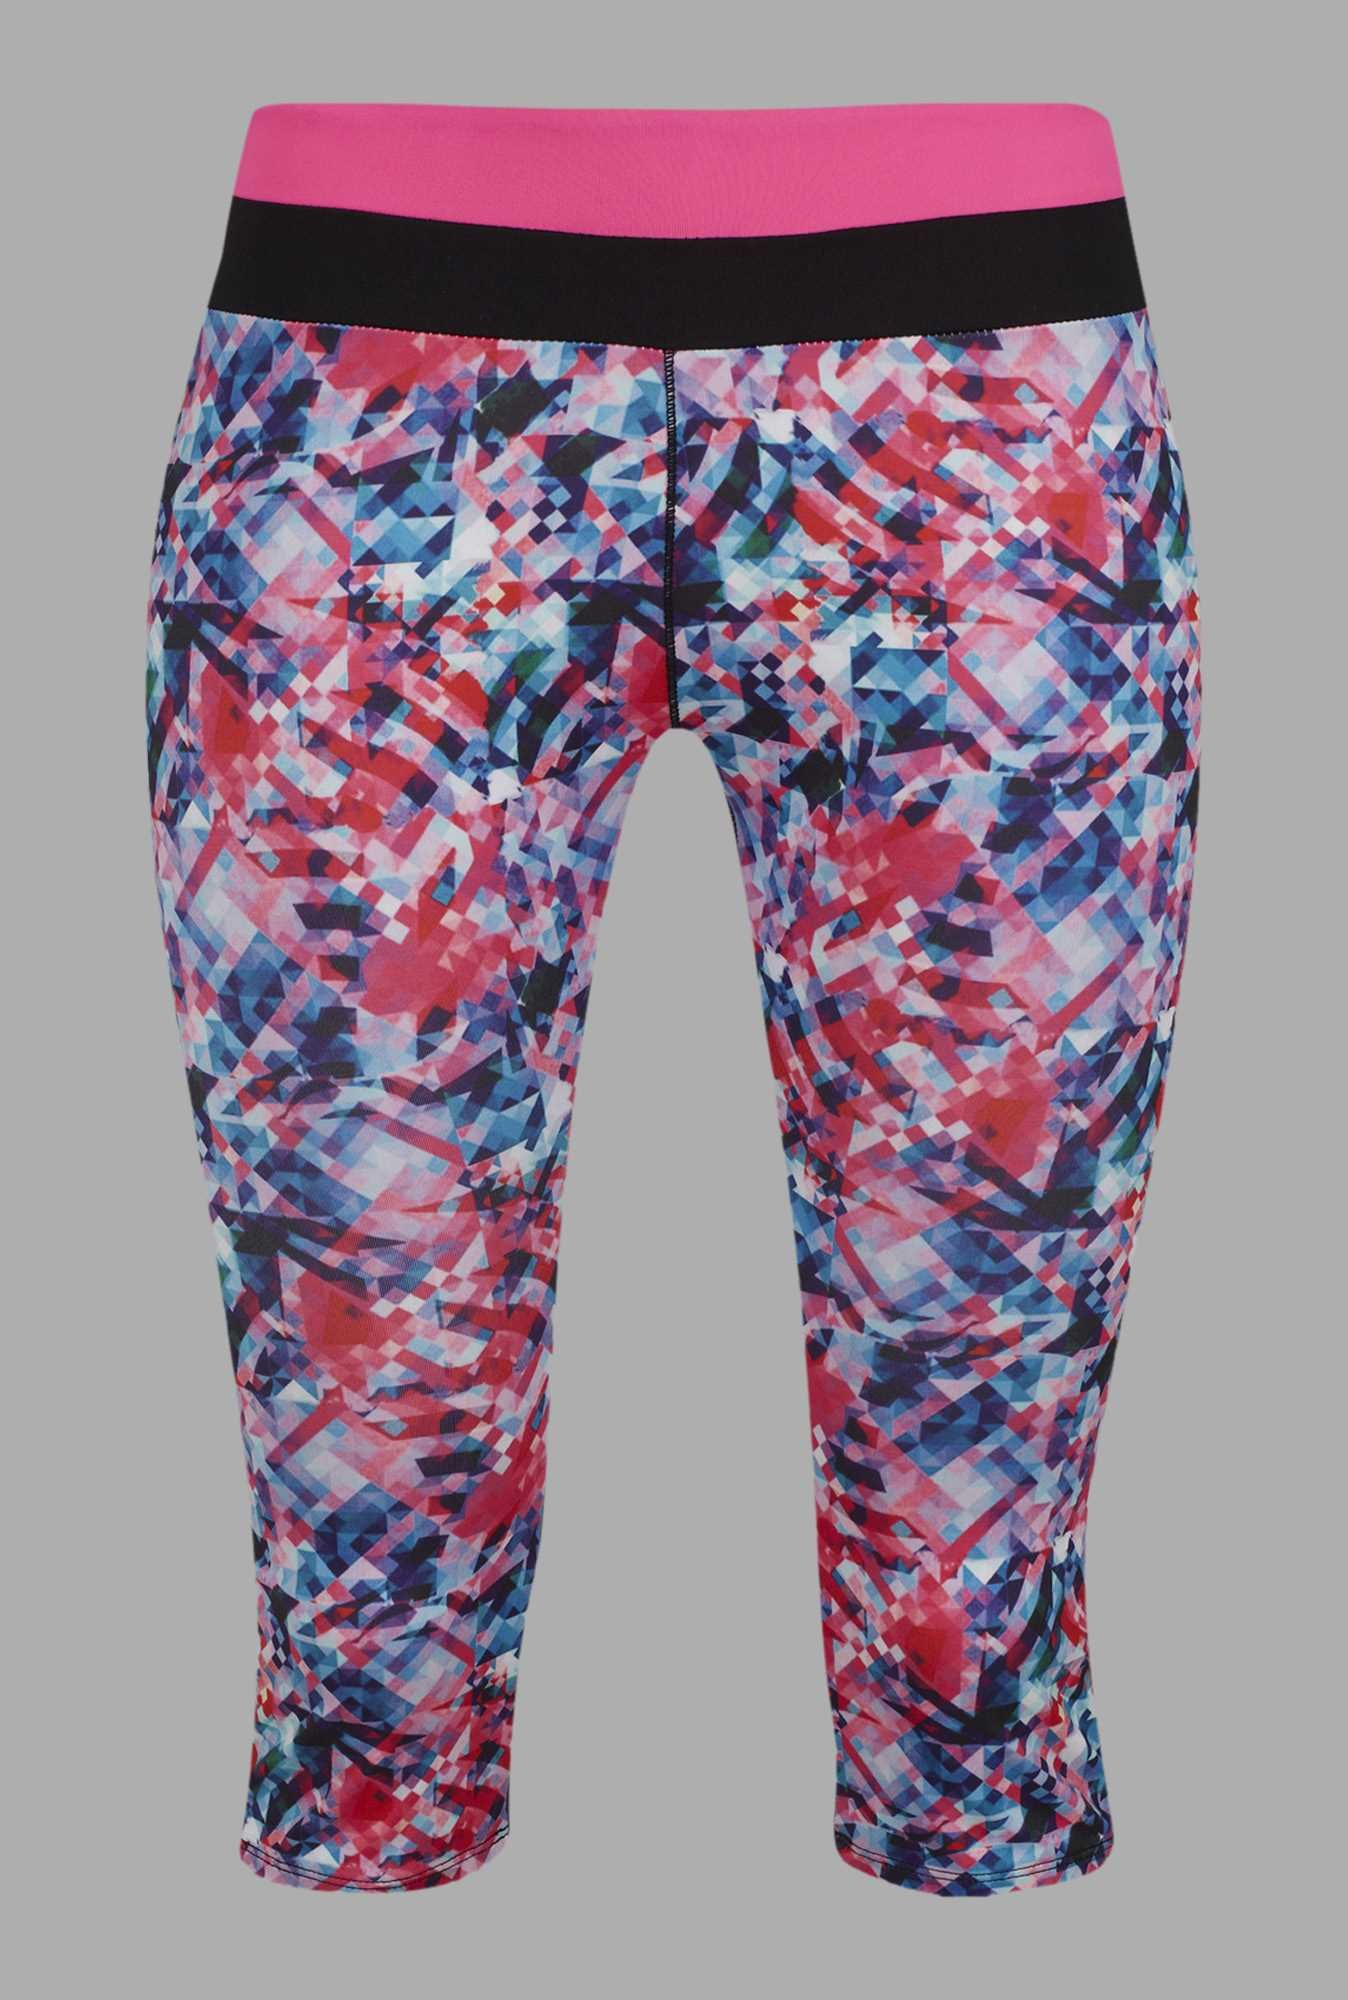 Doone Multicolor Printed Training Capris